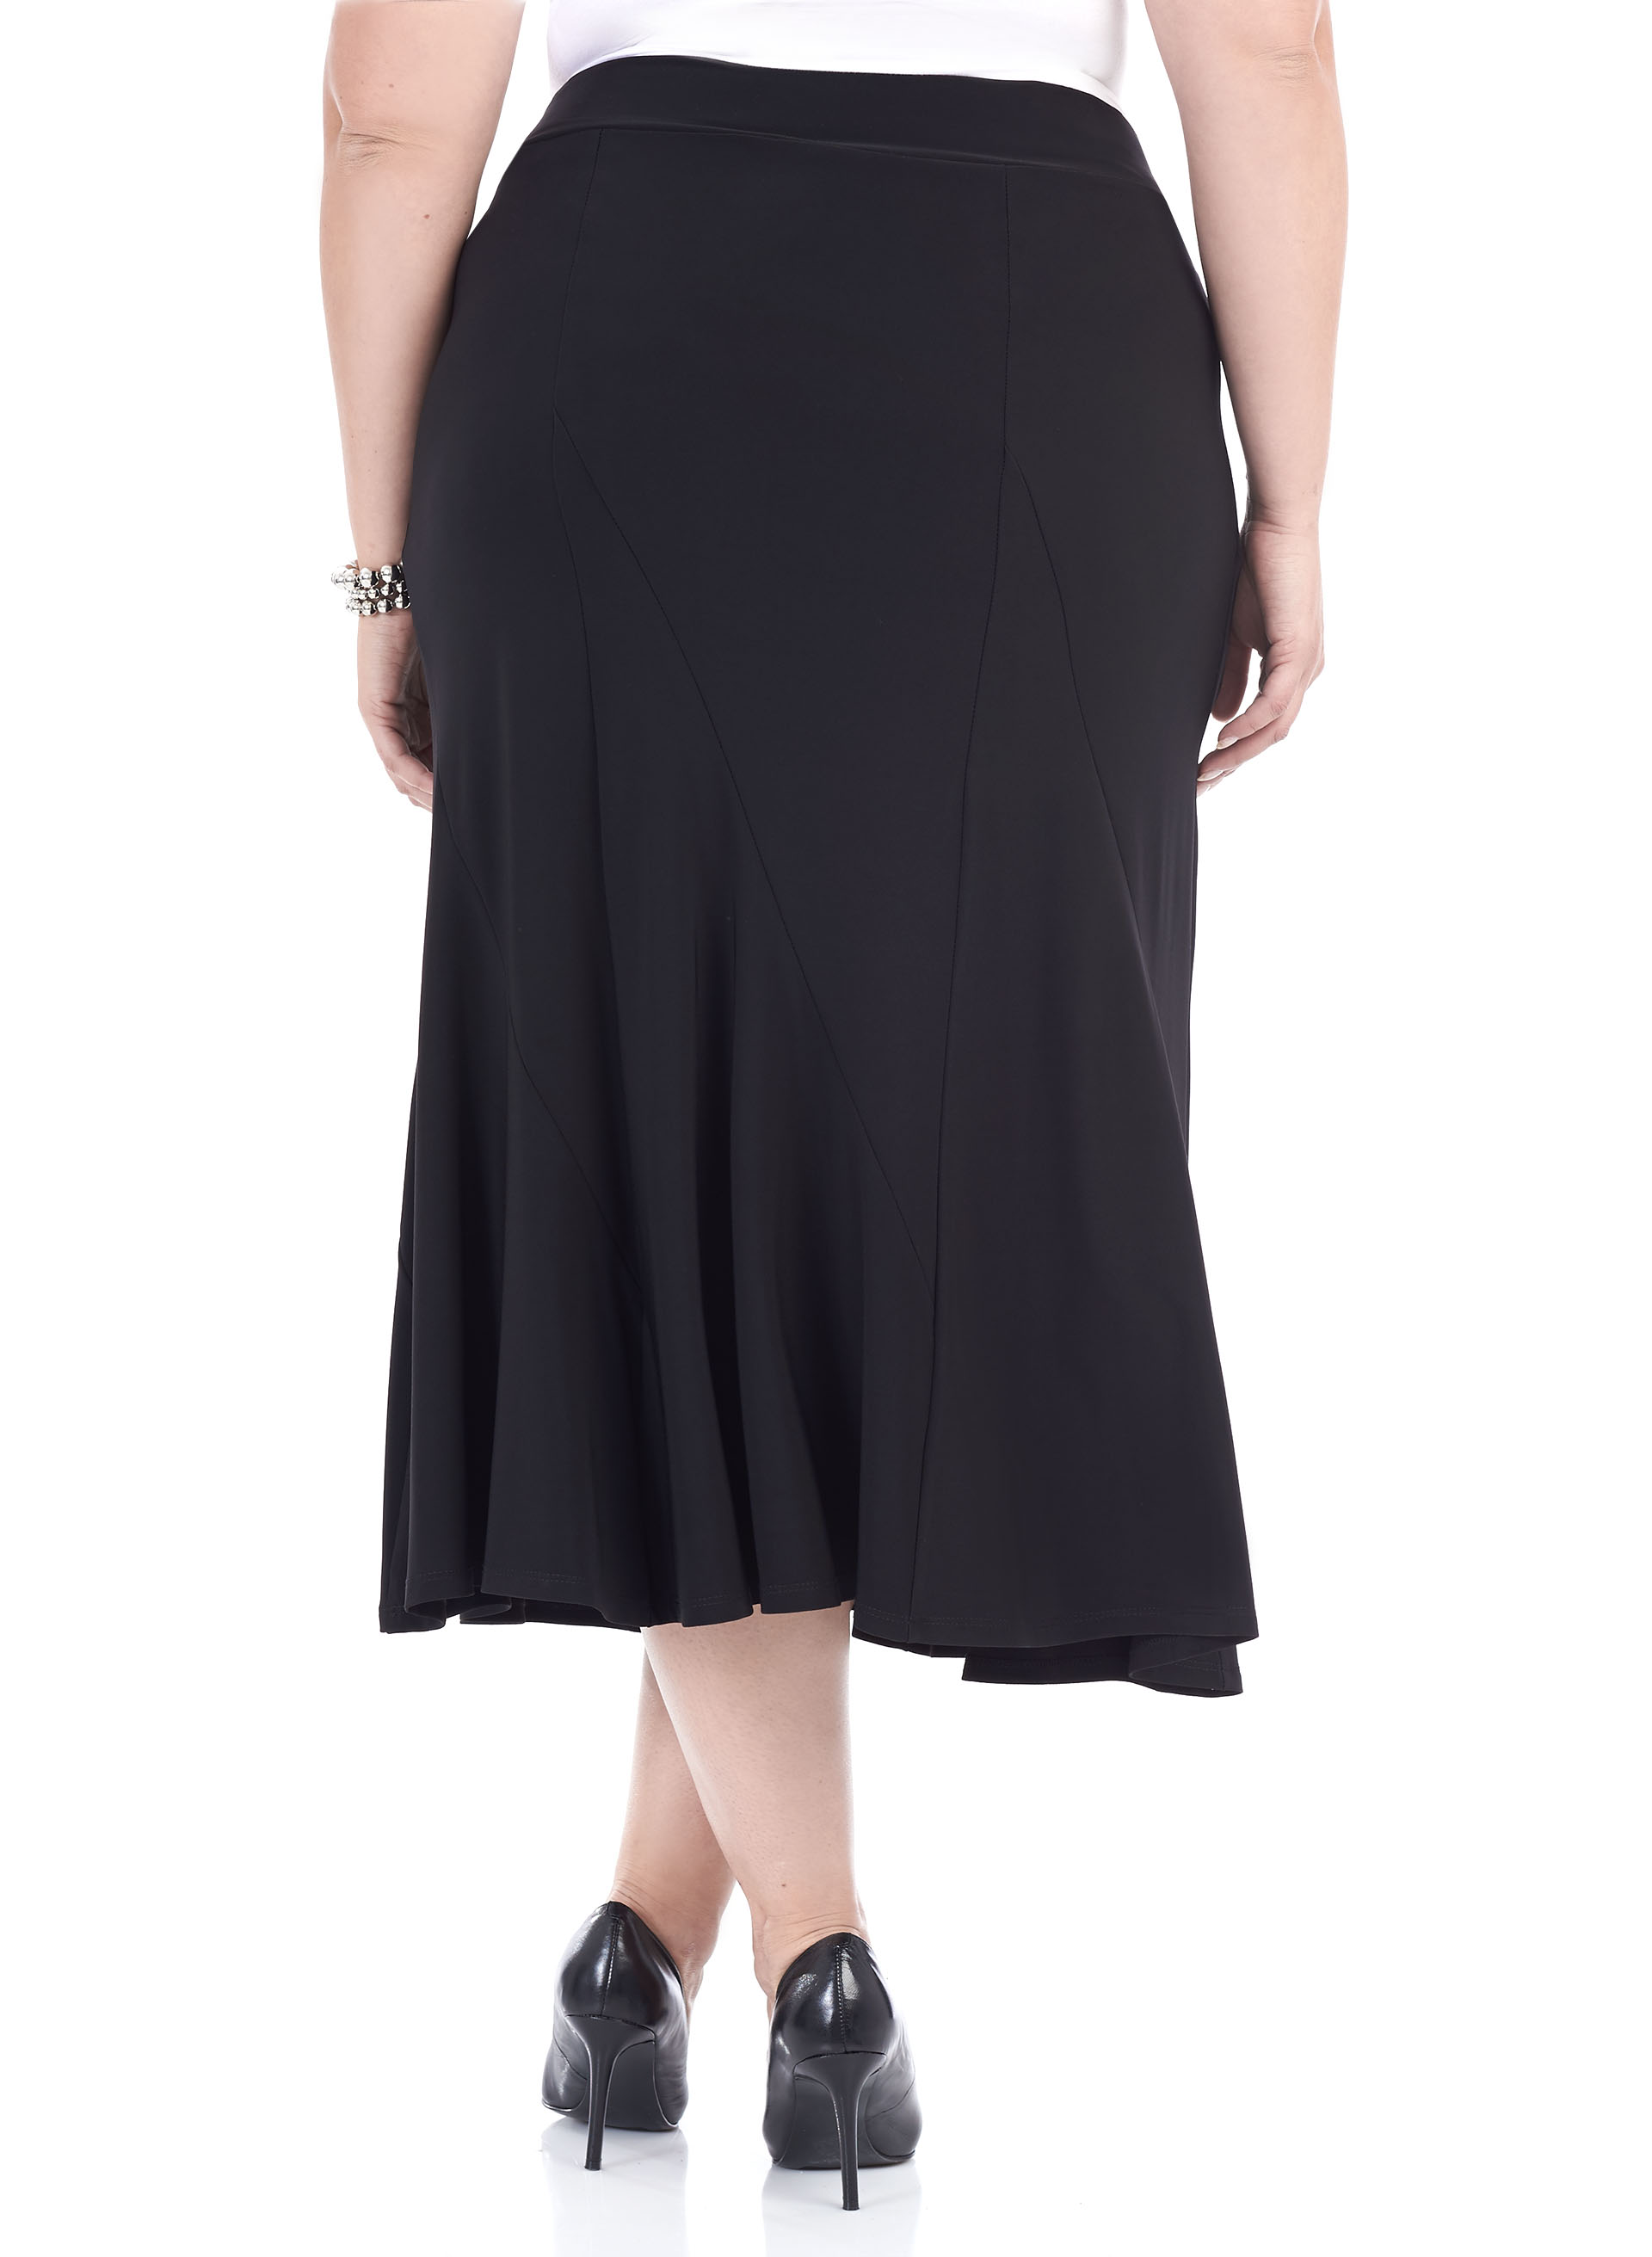 Pull-On A-Line Skirt | FREE Shipping* | Laura